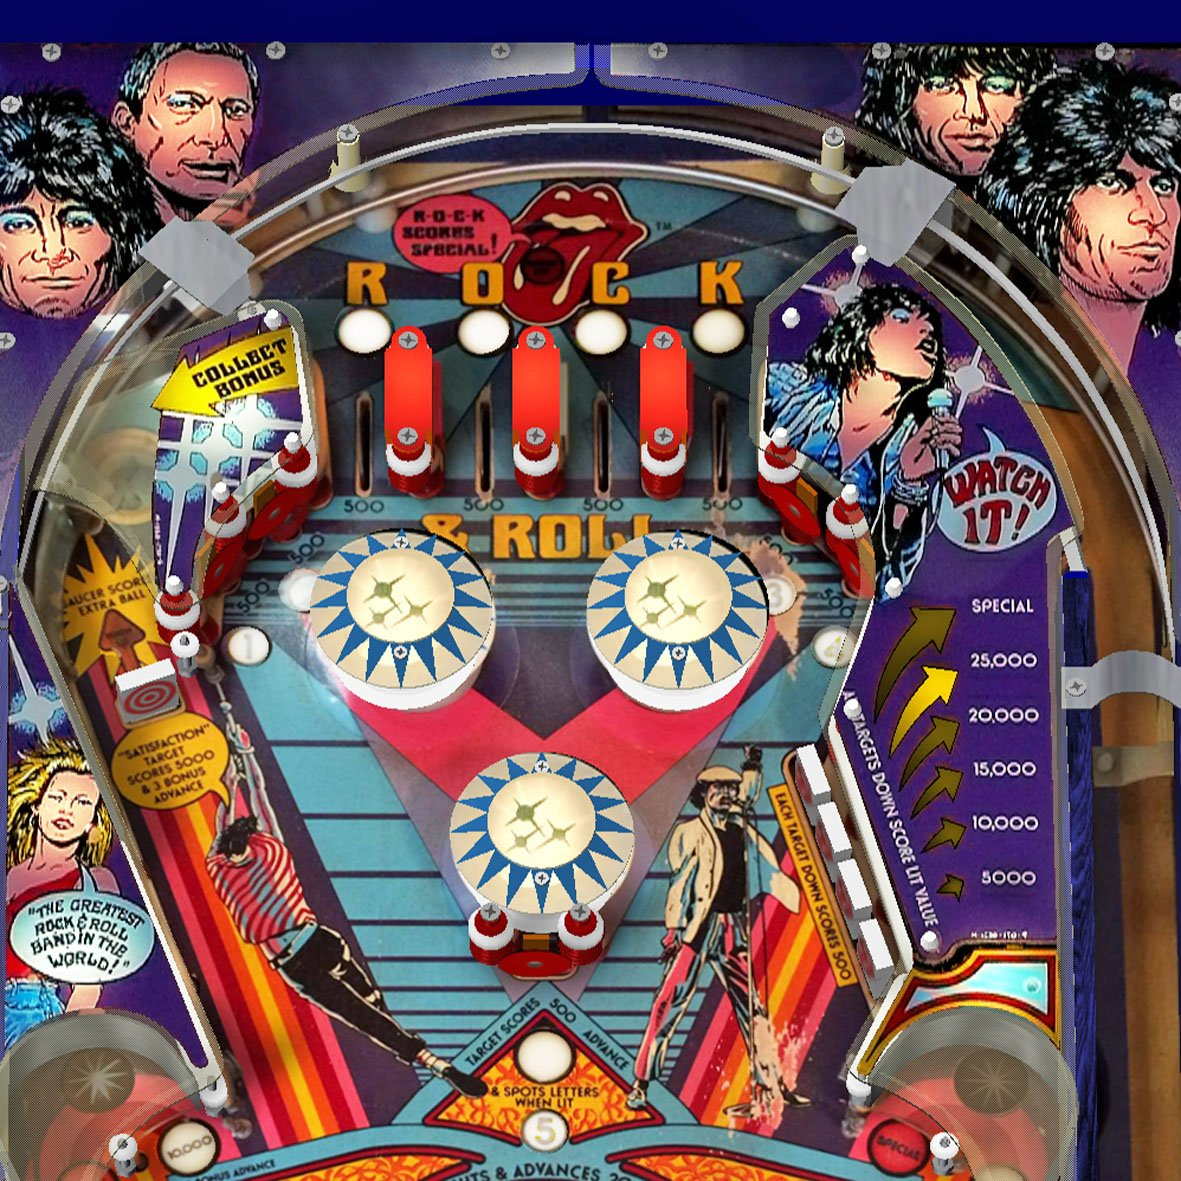 Rolling Stones Pinball Machine 'Coming Soon'